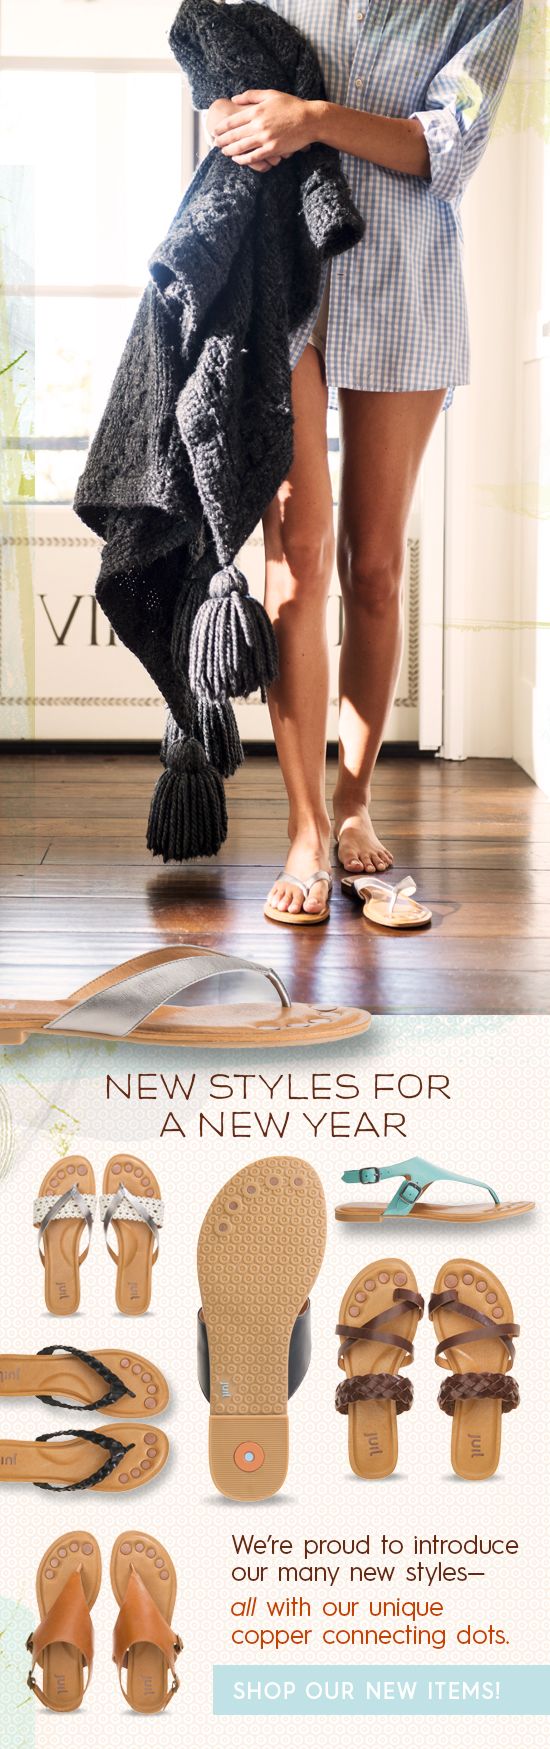 New Styles for a New Year! We're proud to introduce our many NEW sandal styles! #ShoeLove #StayConnected #earthing